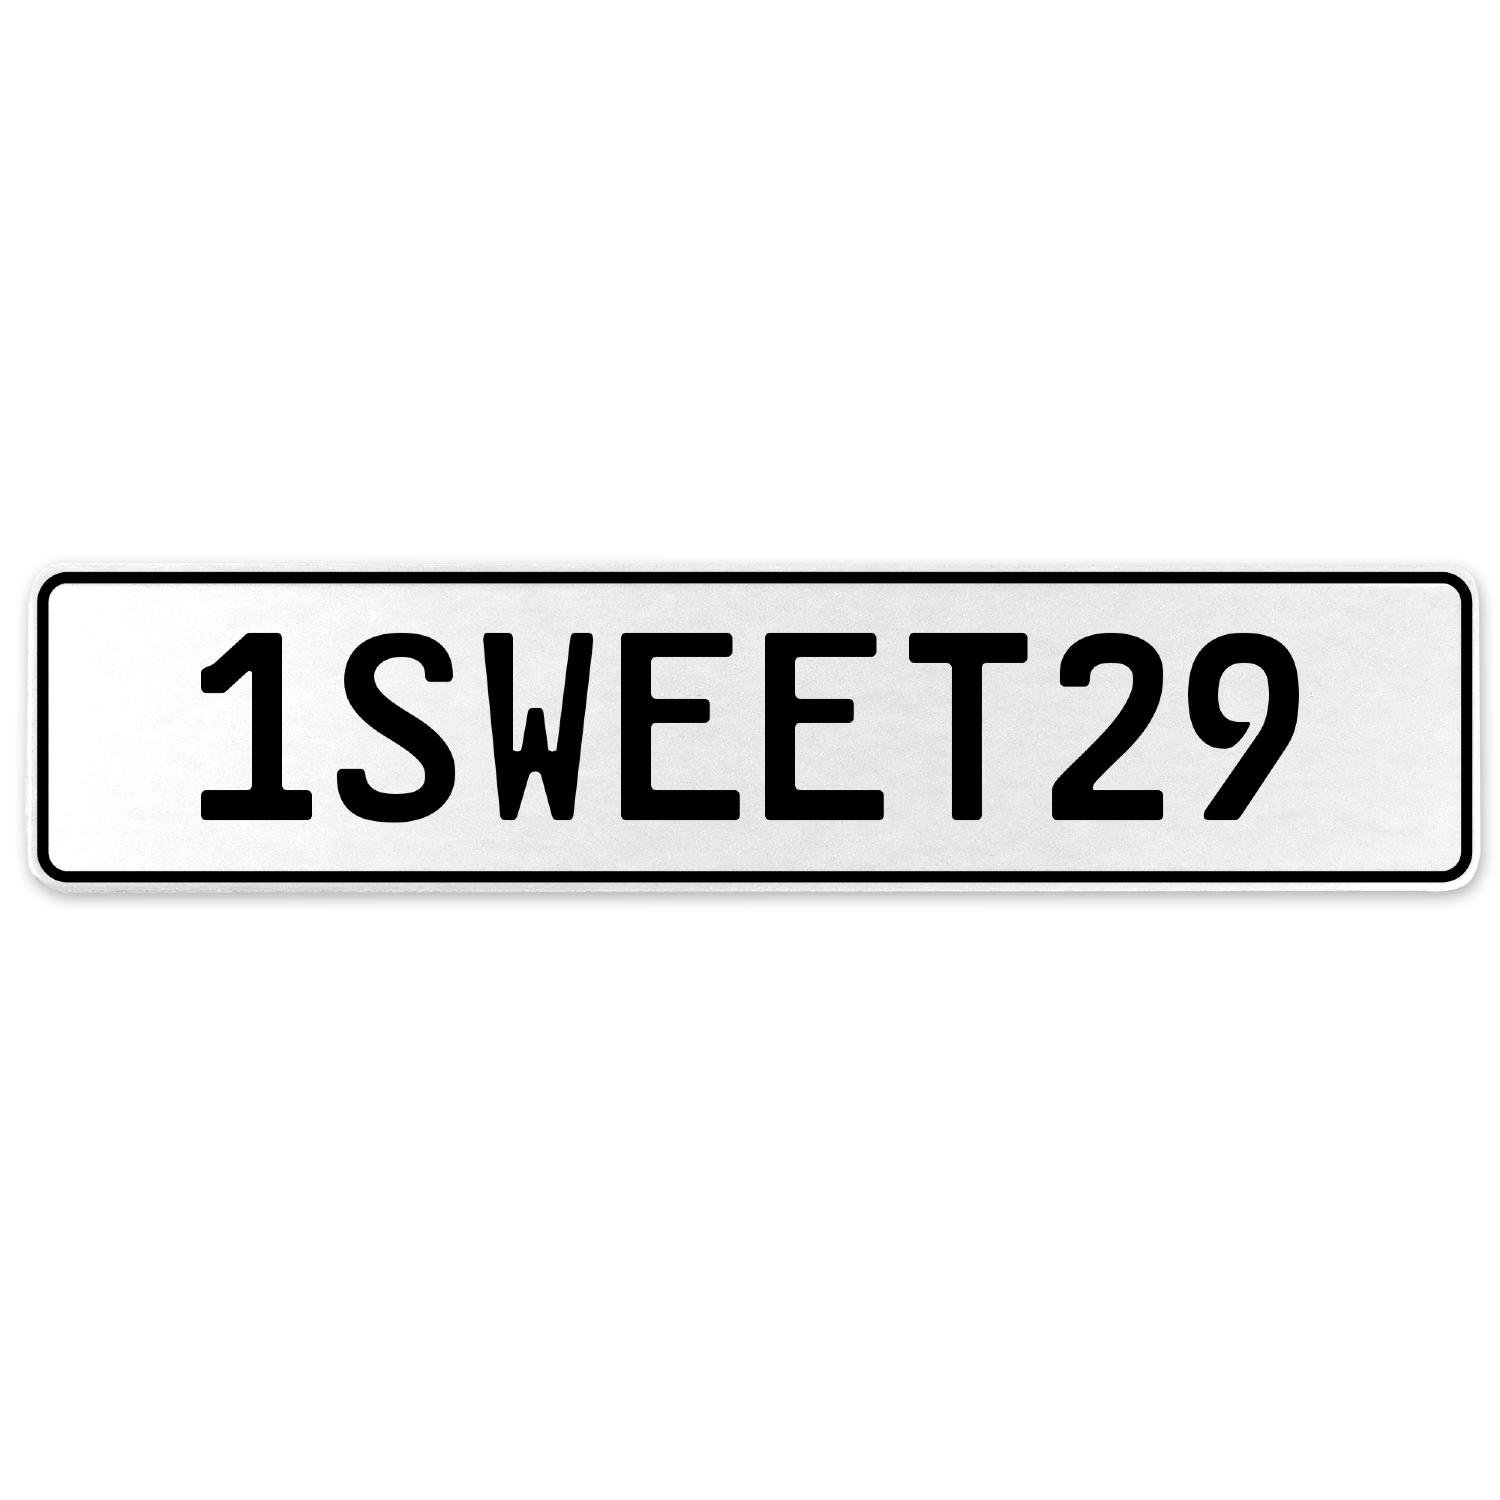 Vintage Parts 554230 1SWEET29 White Stamped Aluminum European License Plate